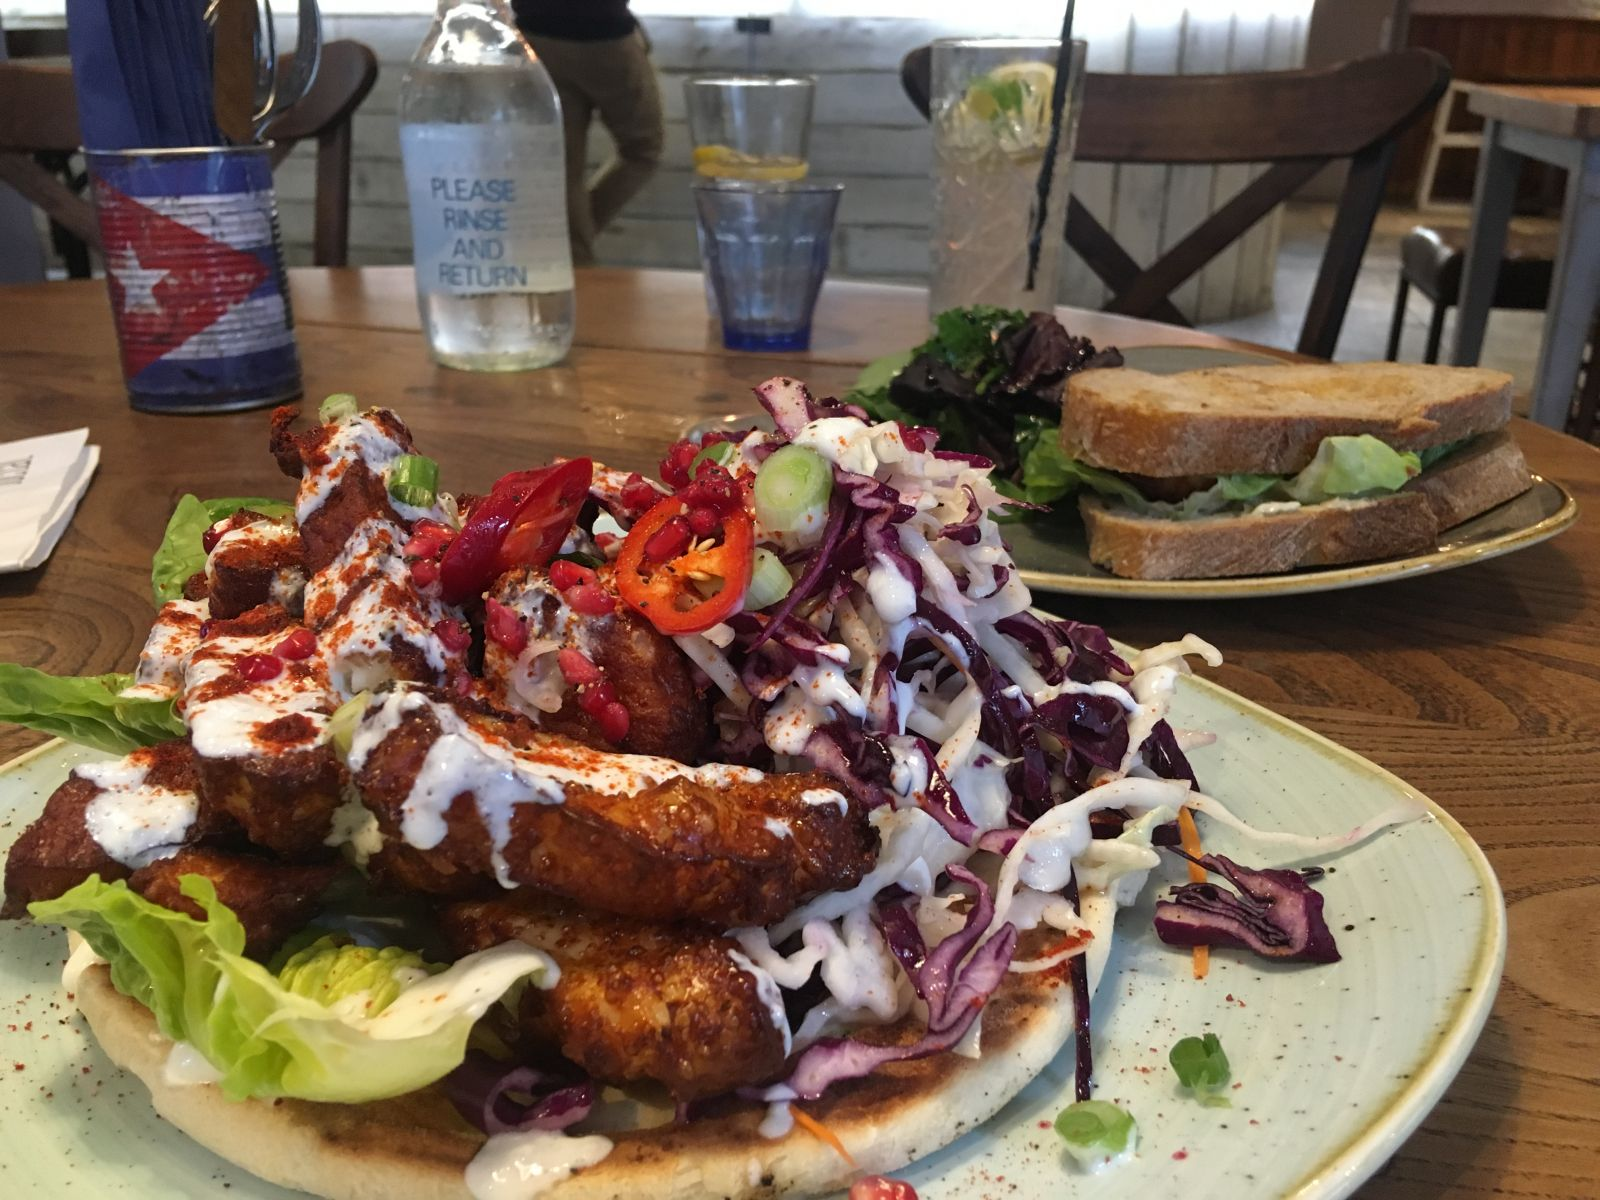 The Halloumi Kebab and Famous Fish Finger Sandwich at The Prince Street Social.